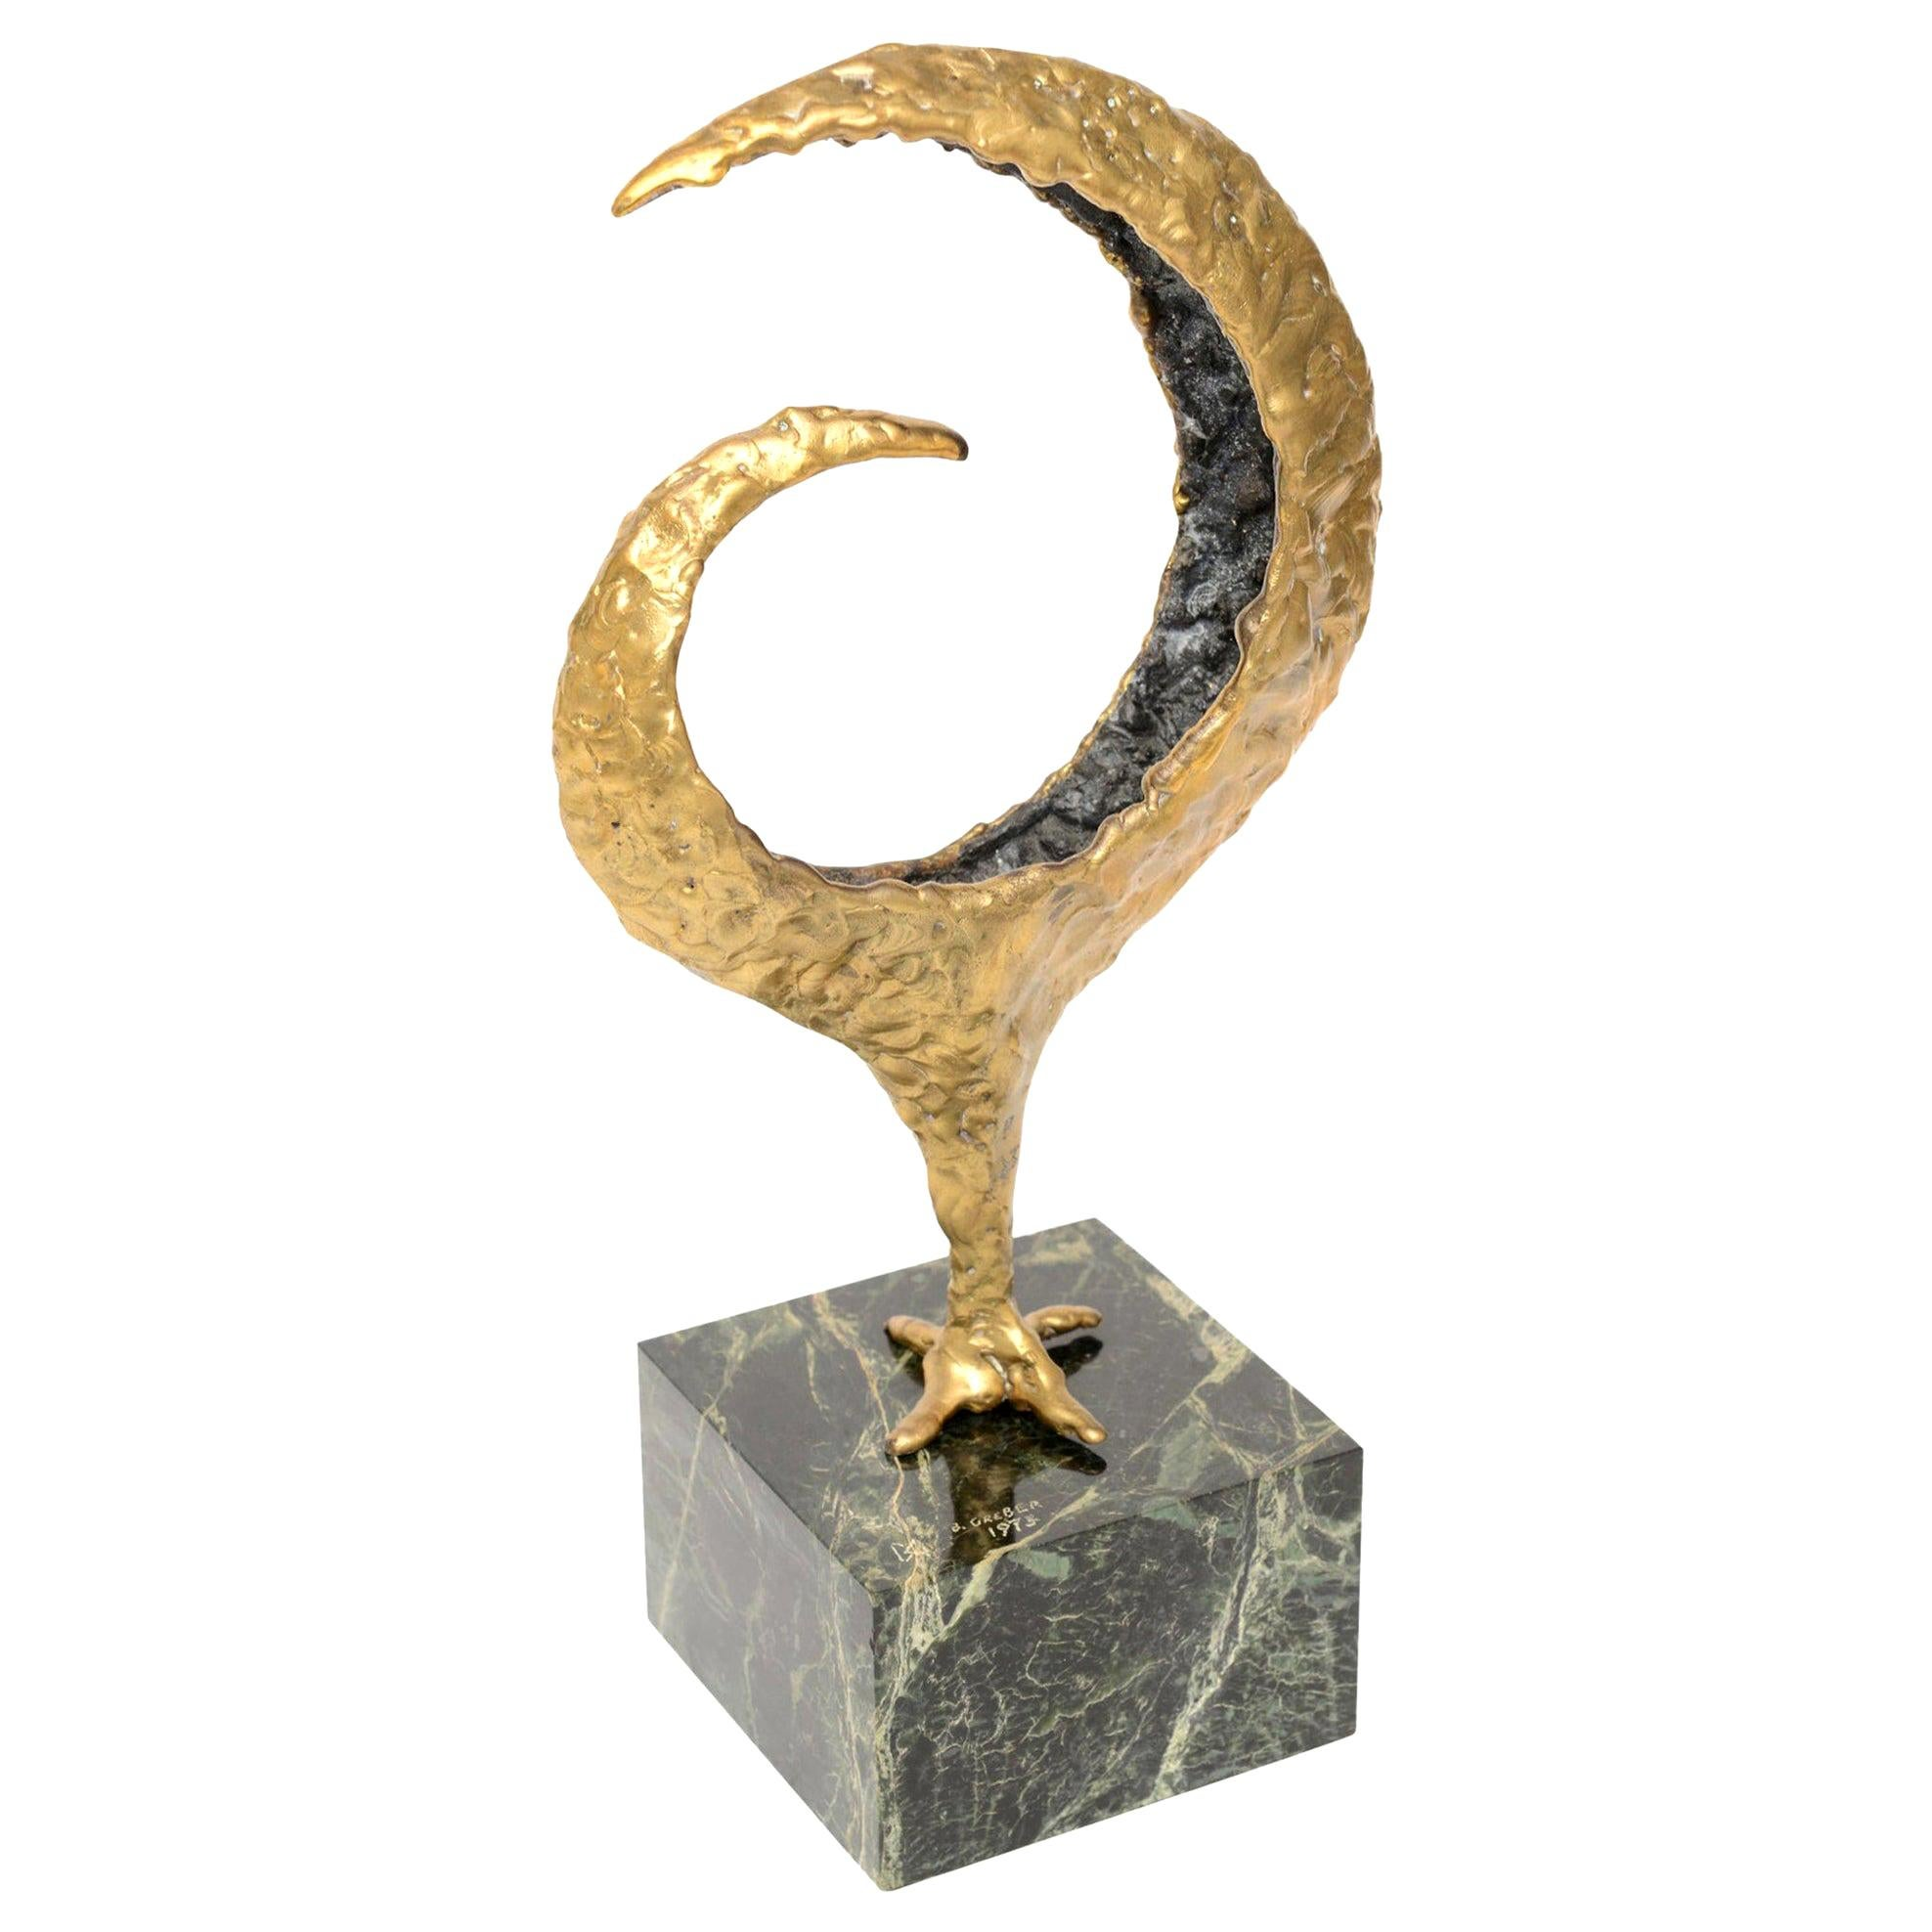 Molten Bronze and Green Marble Signed Gerber Abstract Sculpture Vintage